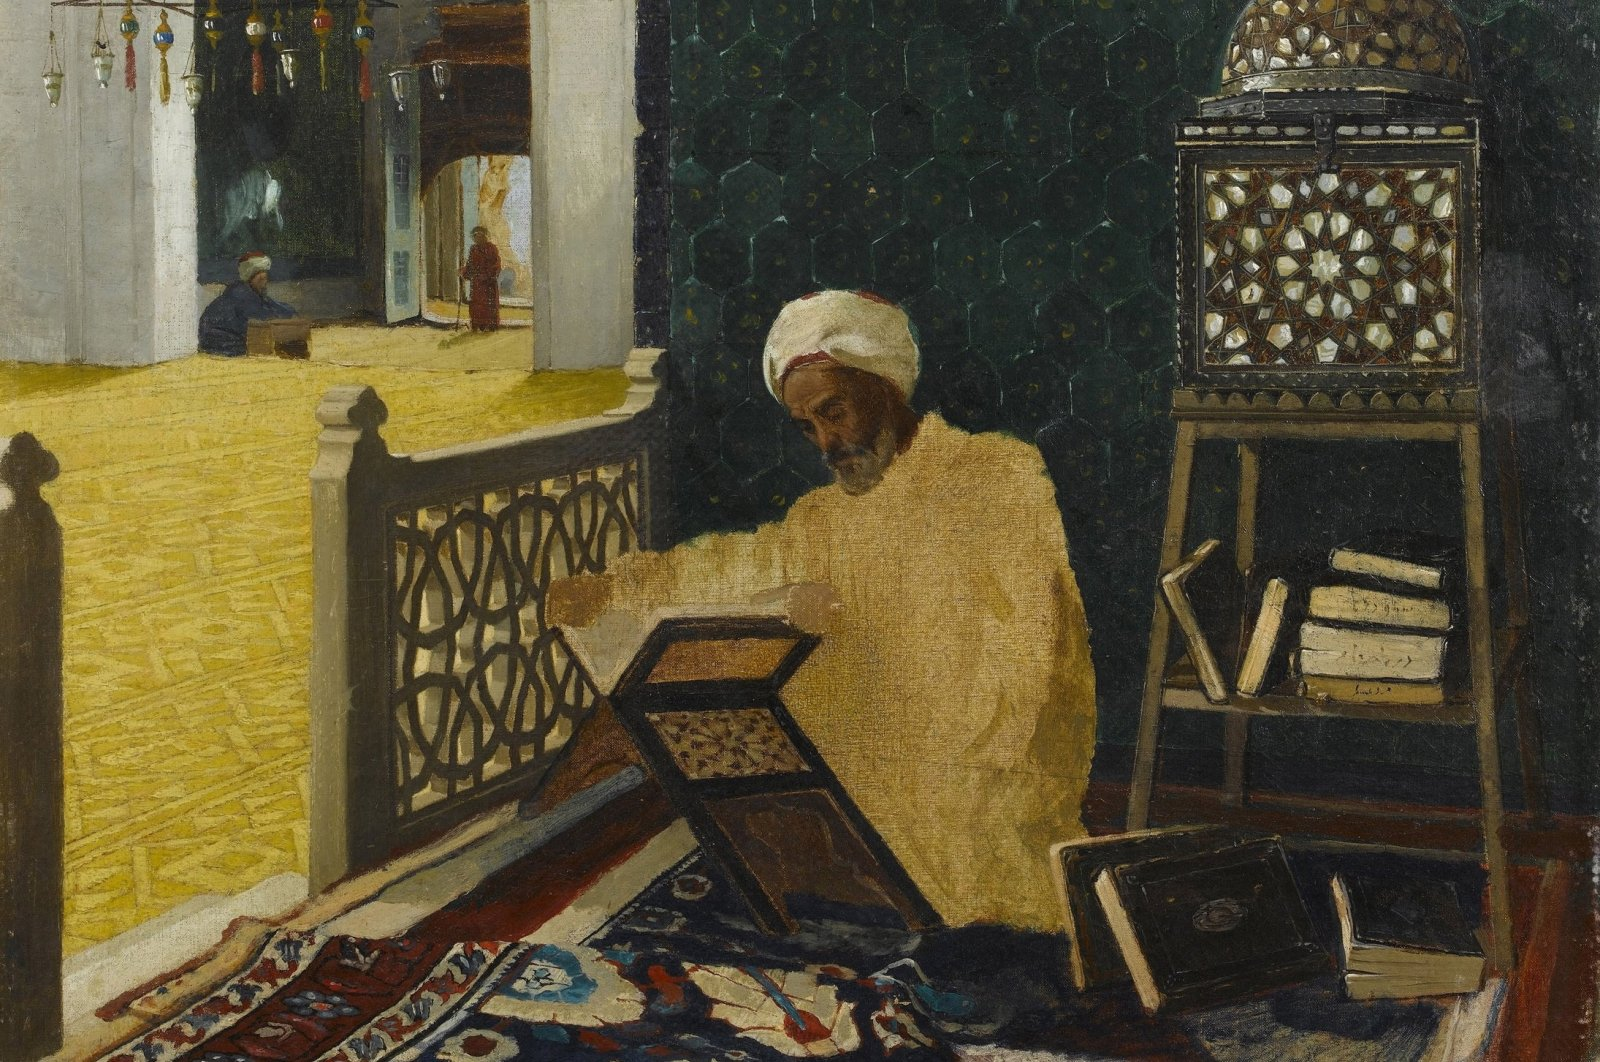 """Turkish painter Osman Hamdi Bey's """"Reciting the Quran"""" painting from the collection of Sakıp Sabancı Museum, Istanbul. (Photo by Fine Art Images/Heritage Images/Getty Images)"""